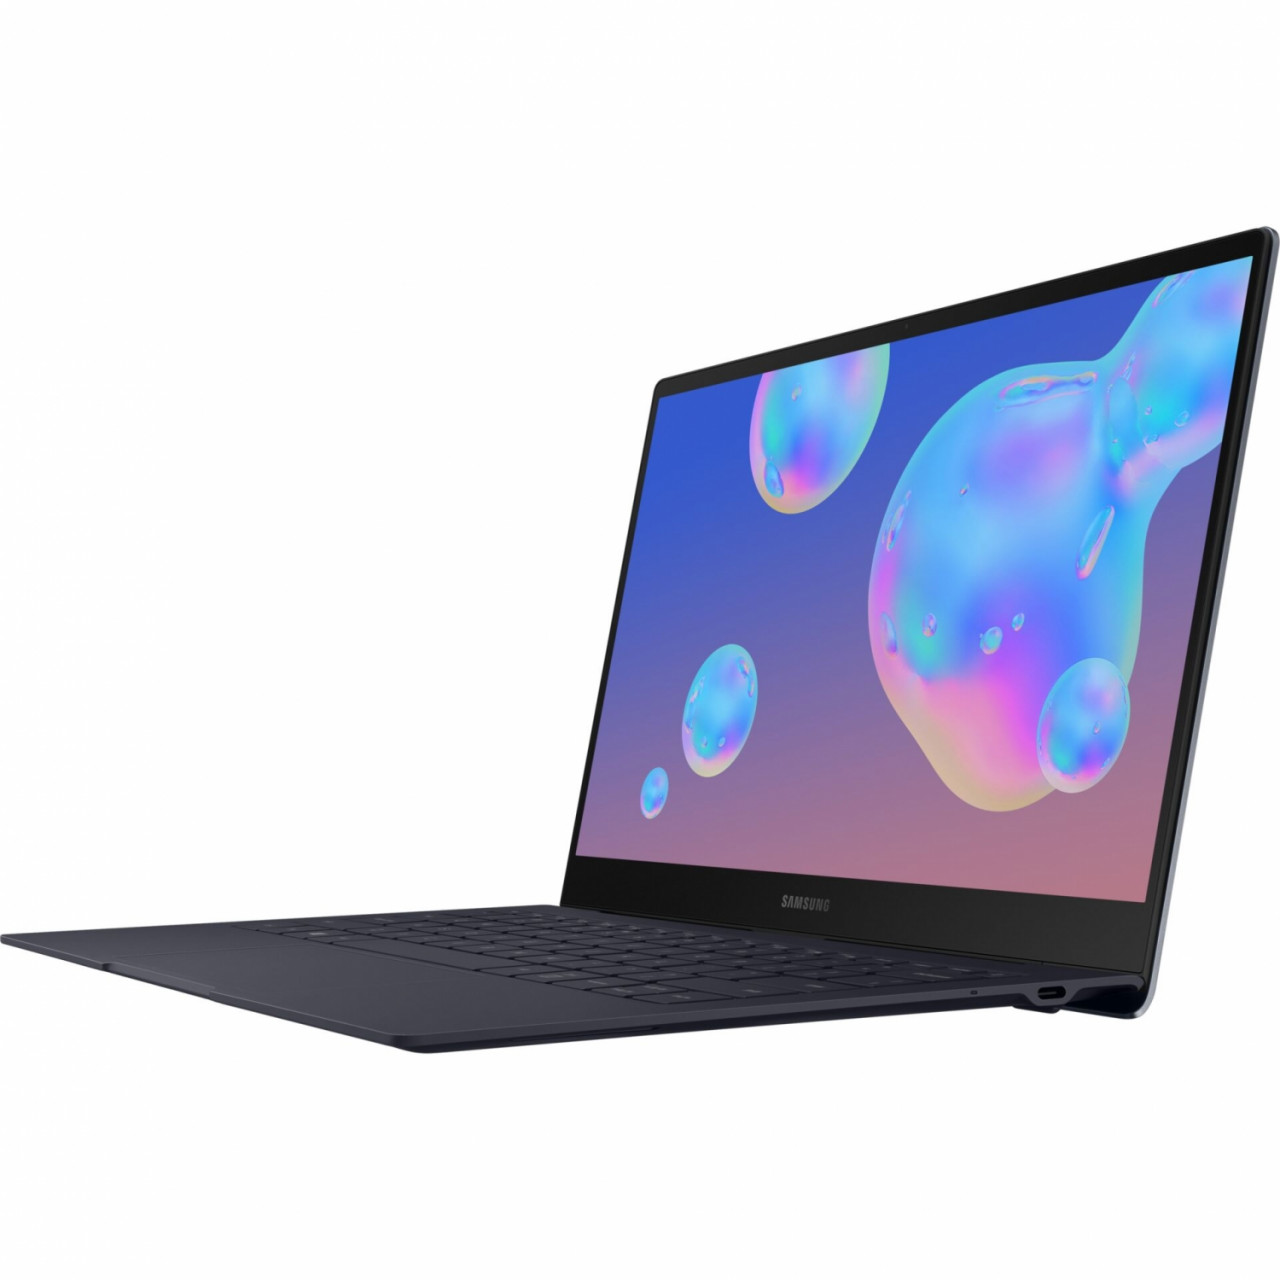 Samsung Galaxy Book S grau 13.3(33,8cm) Ci5 8GB 256GB Win10